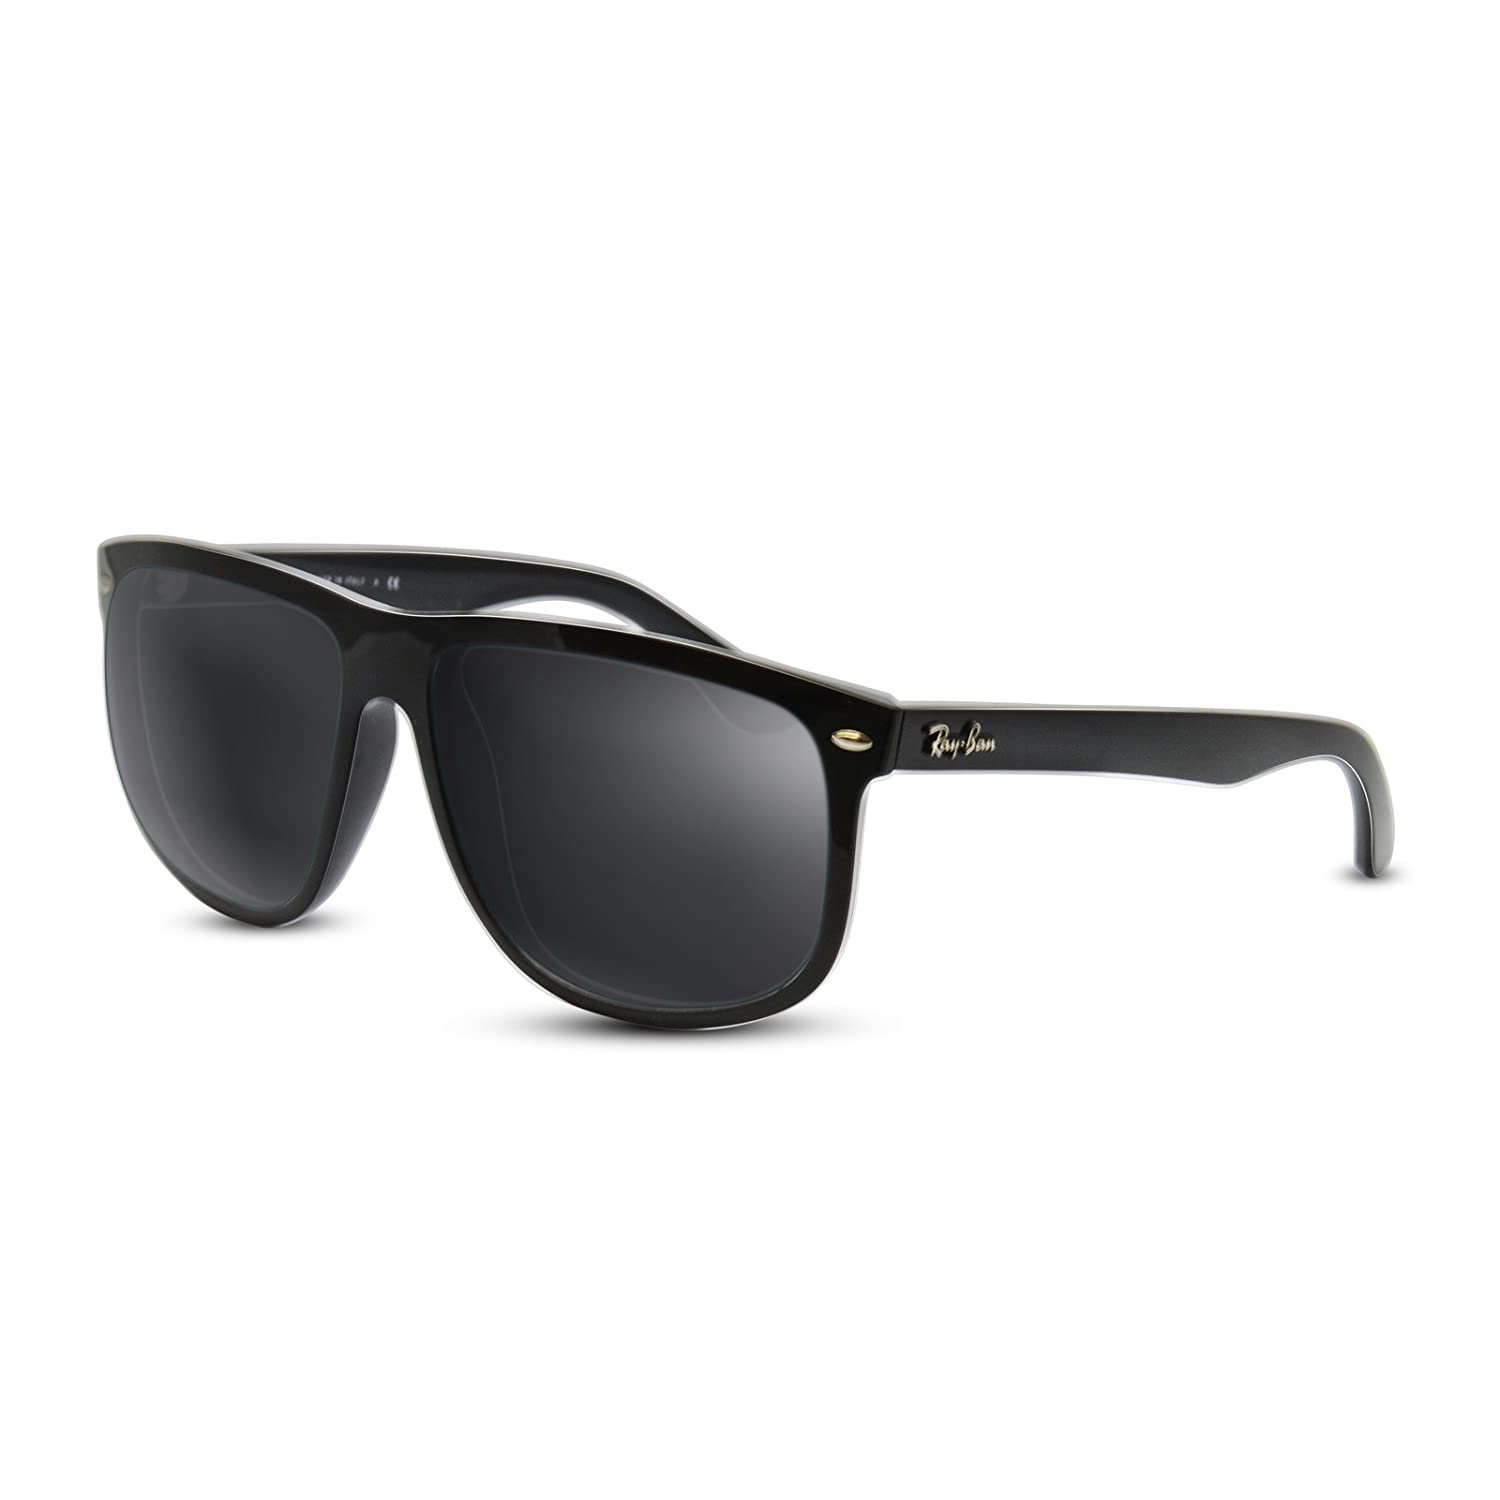 Amazon.com: Sublime Optics Lentes de repuesto para Ray Ban ...